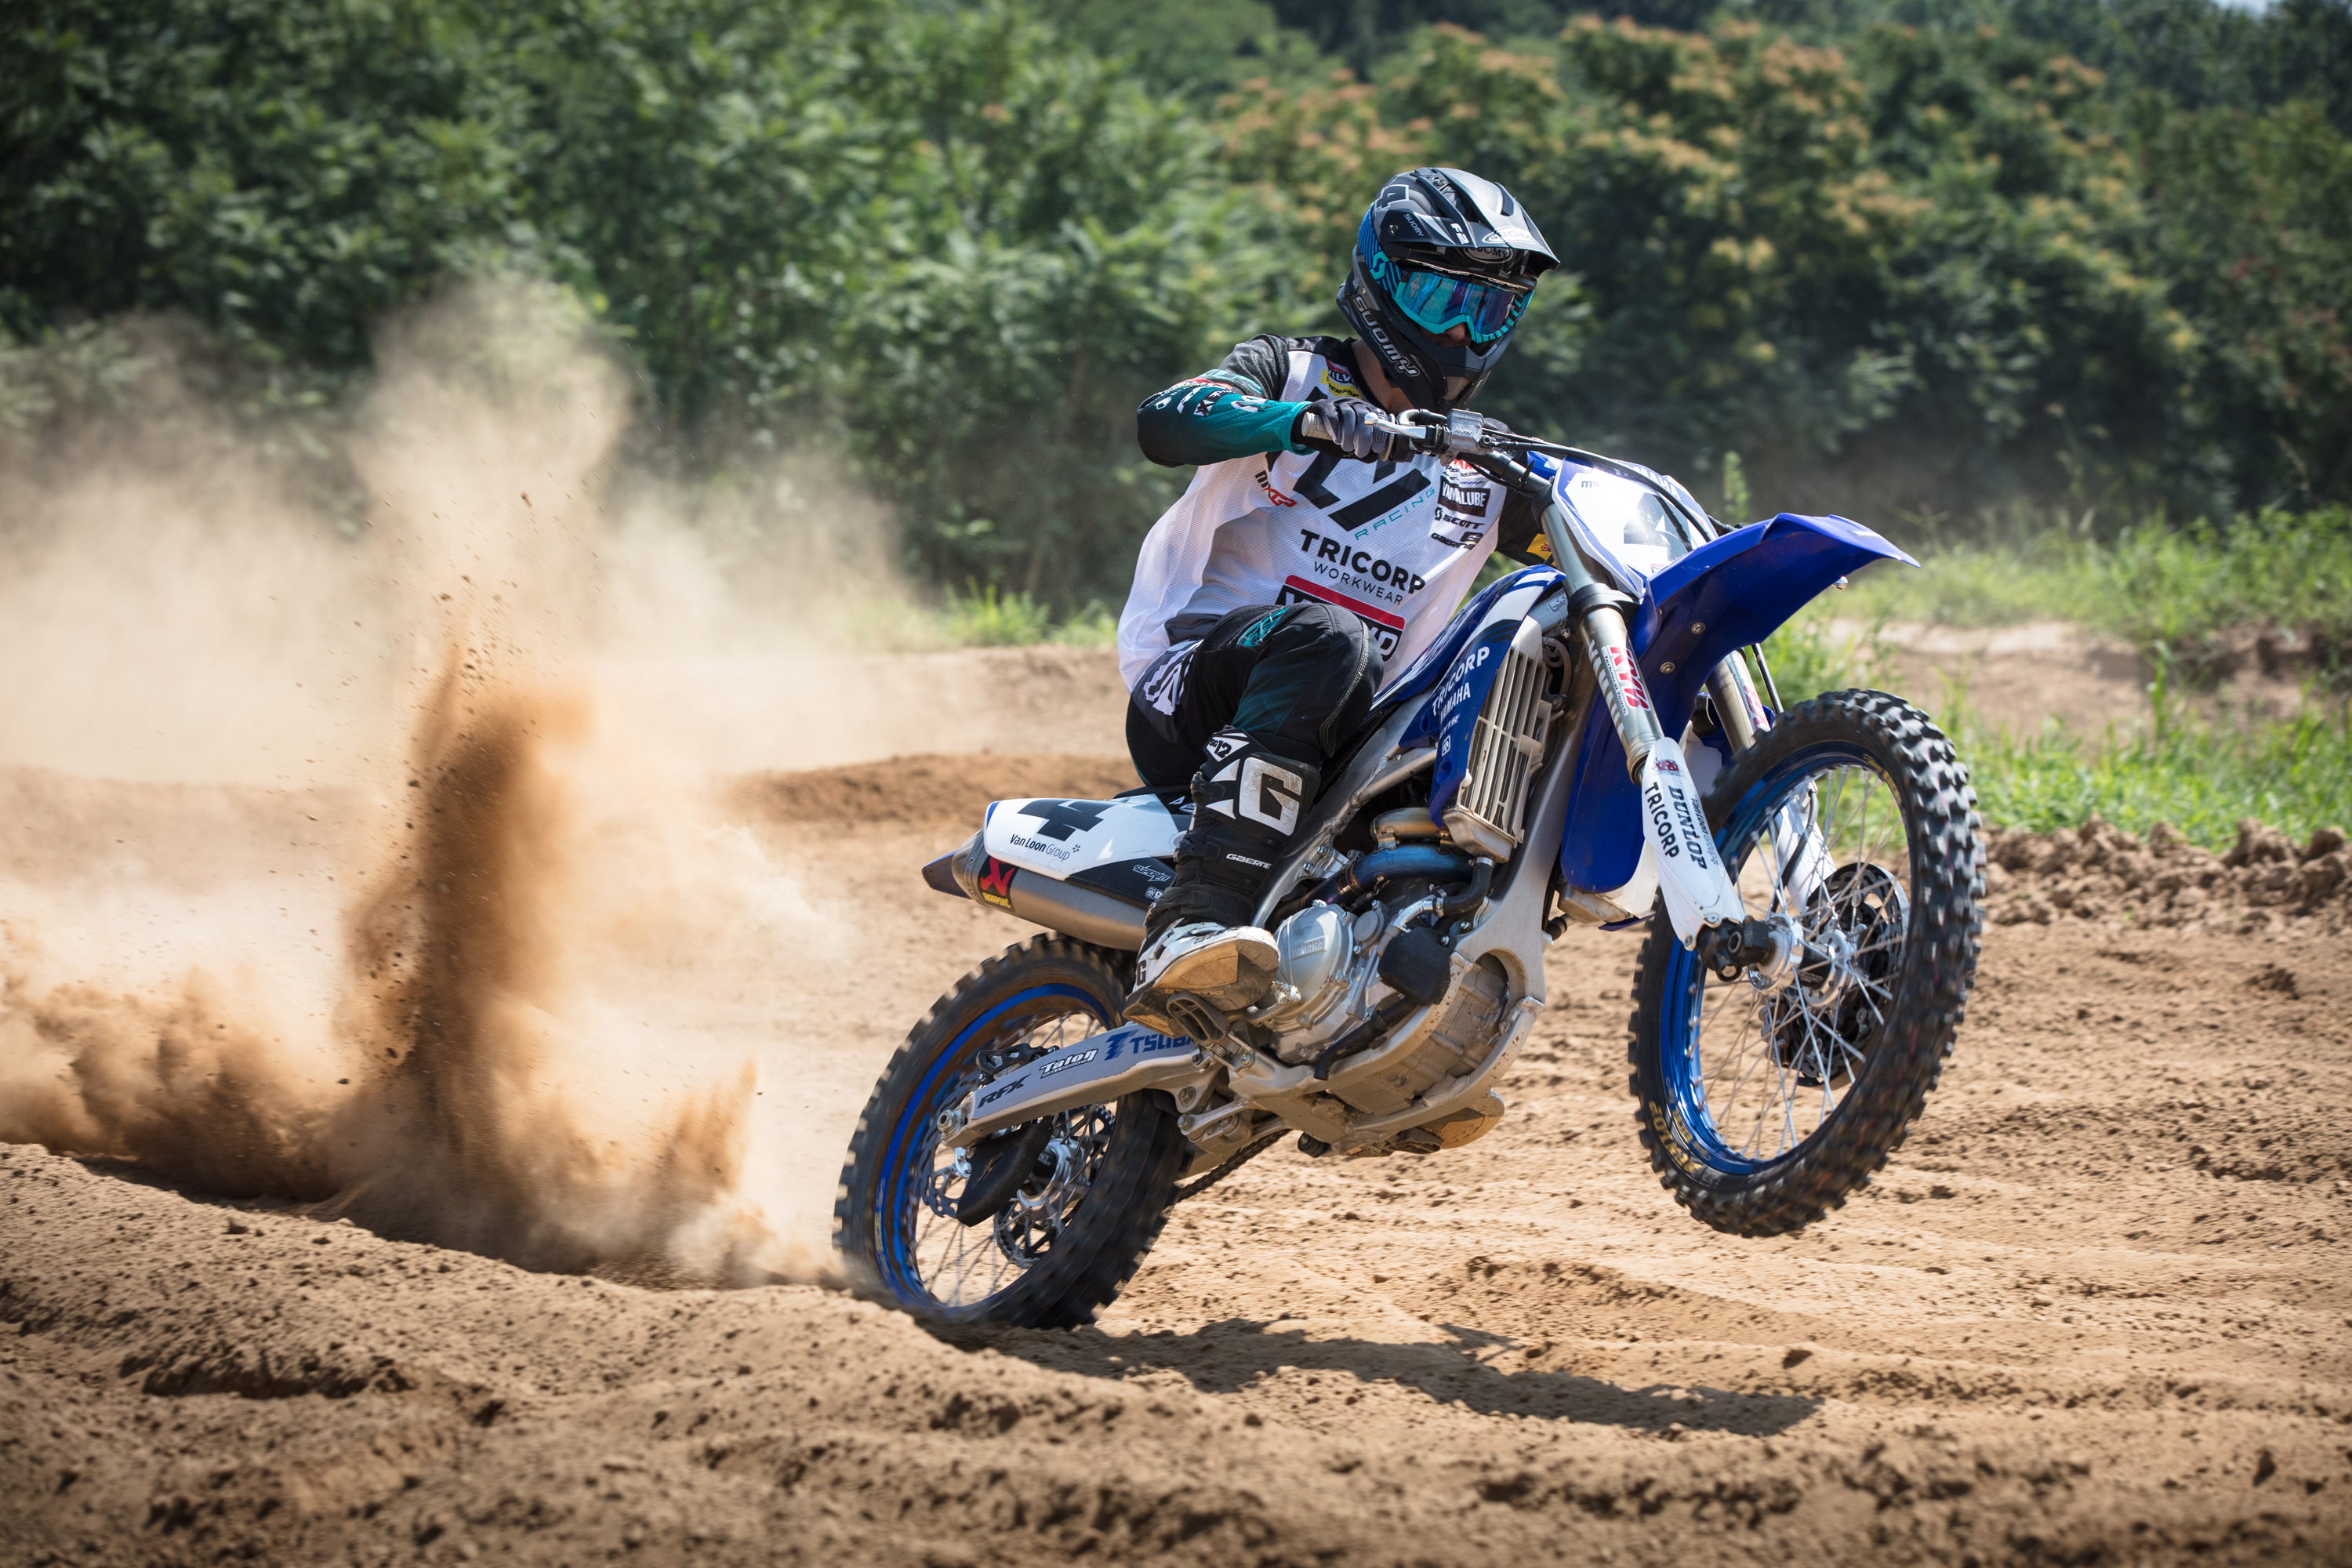 Tonus To Debut The 2018 Yamaha Yz450f At The Czech Gp